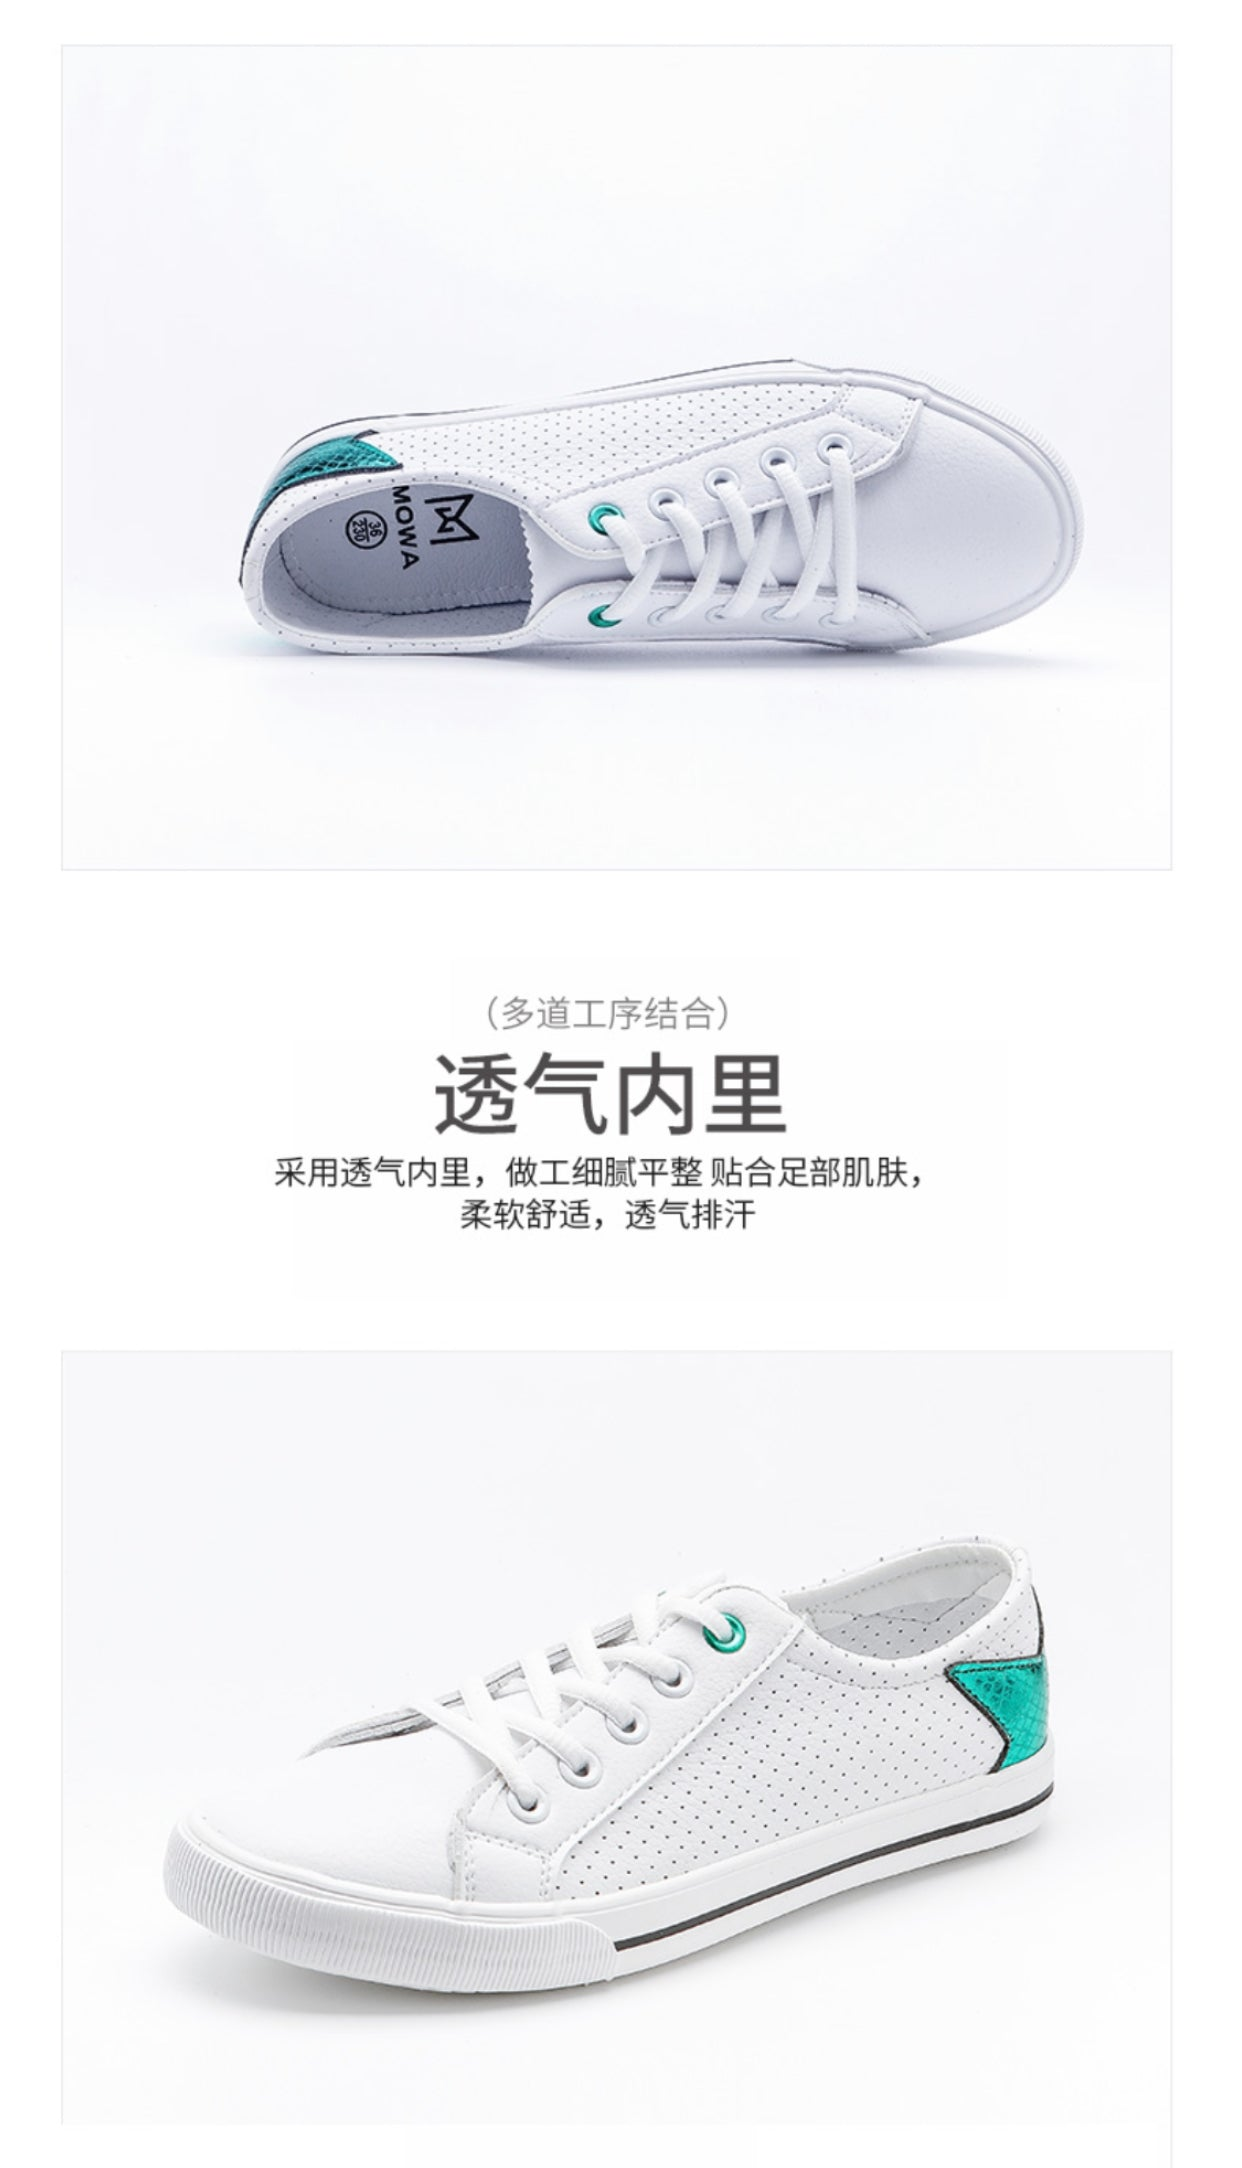 Star Lights Sneakers for Women